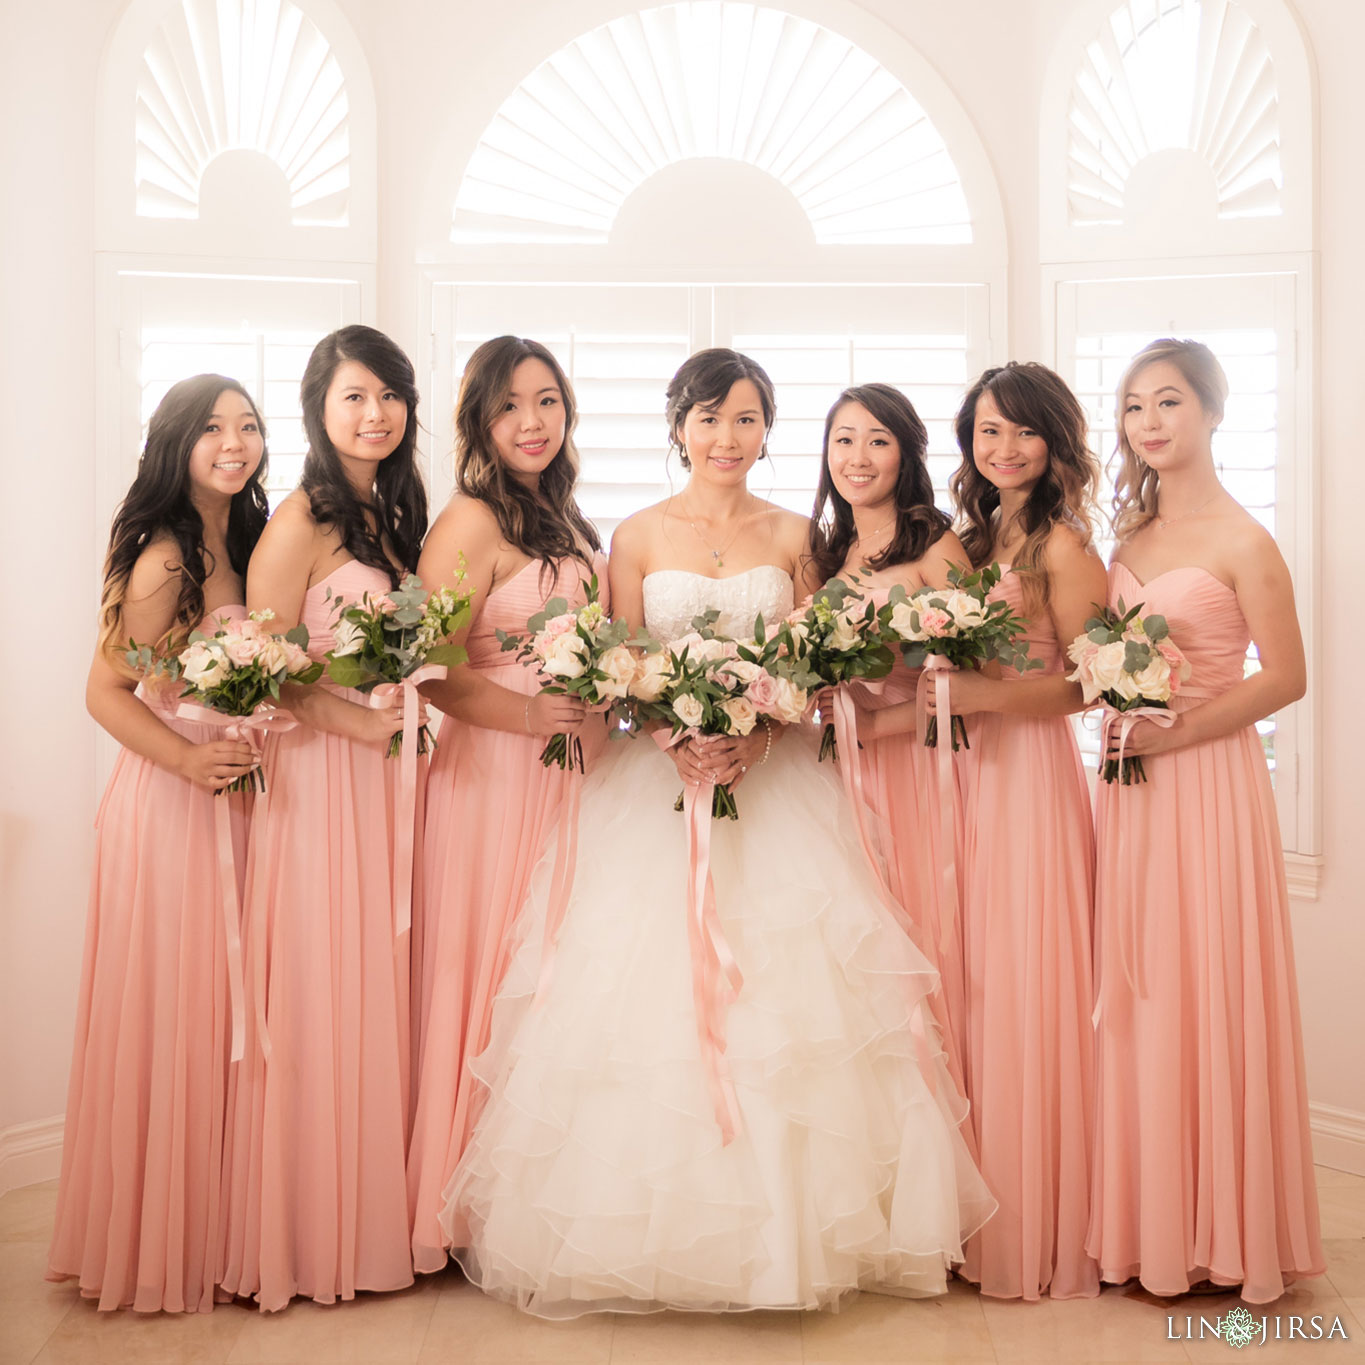 08 brookside golf club pasadena bridesmaids wedding photography